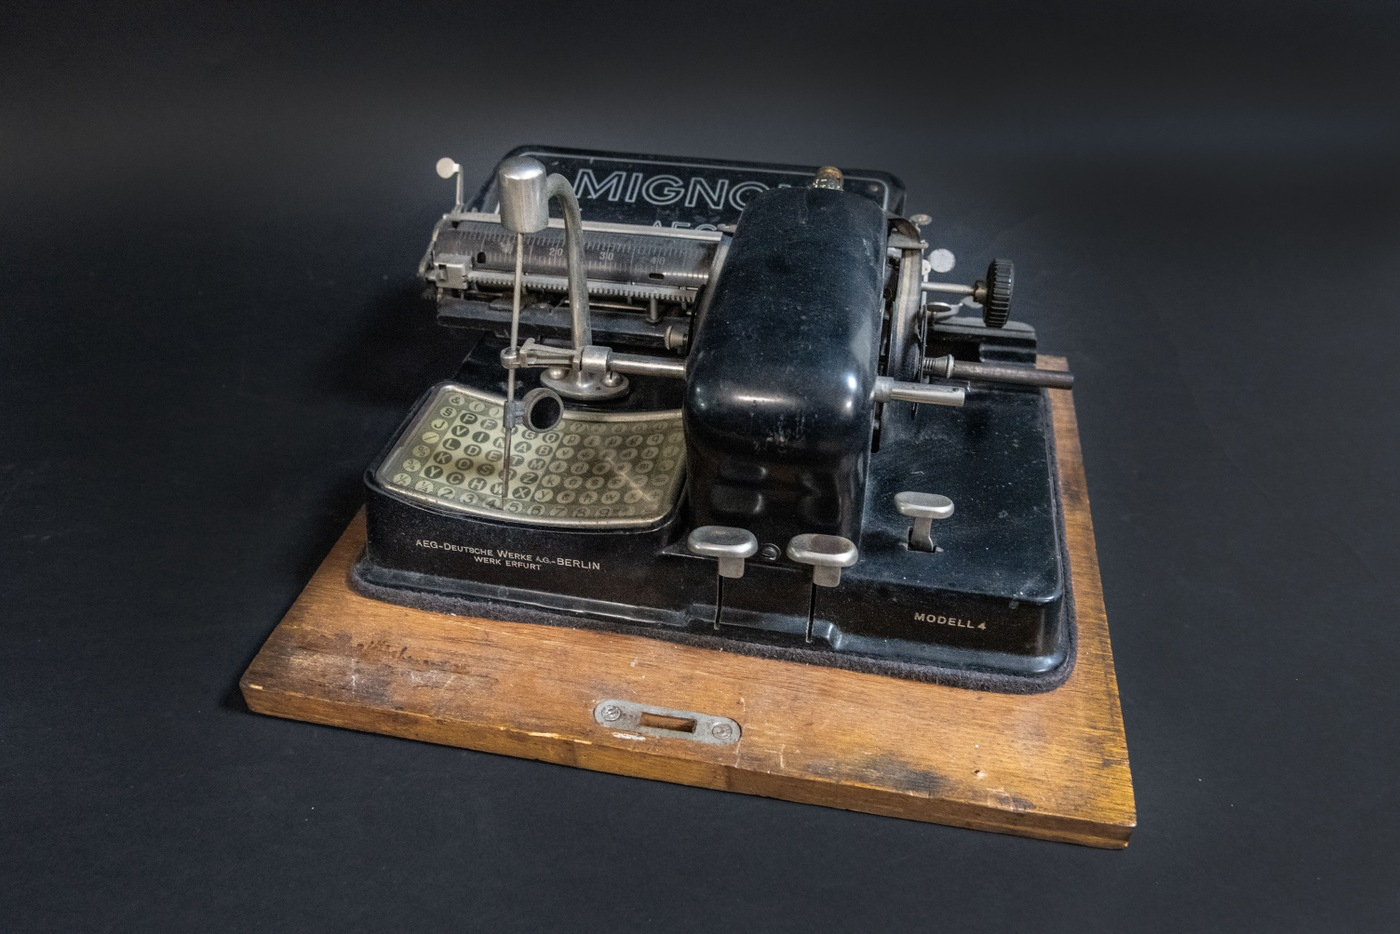 The FBI's August Artifact of the Month is a Mignon 4, a mechanical index typewriter from the early 20th century.